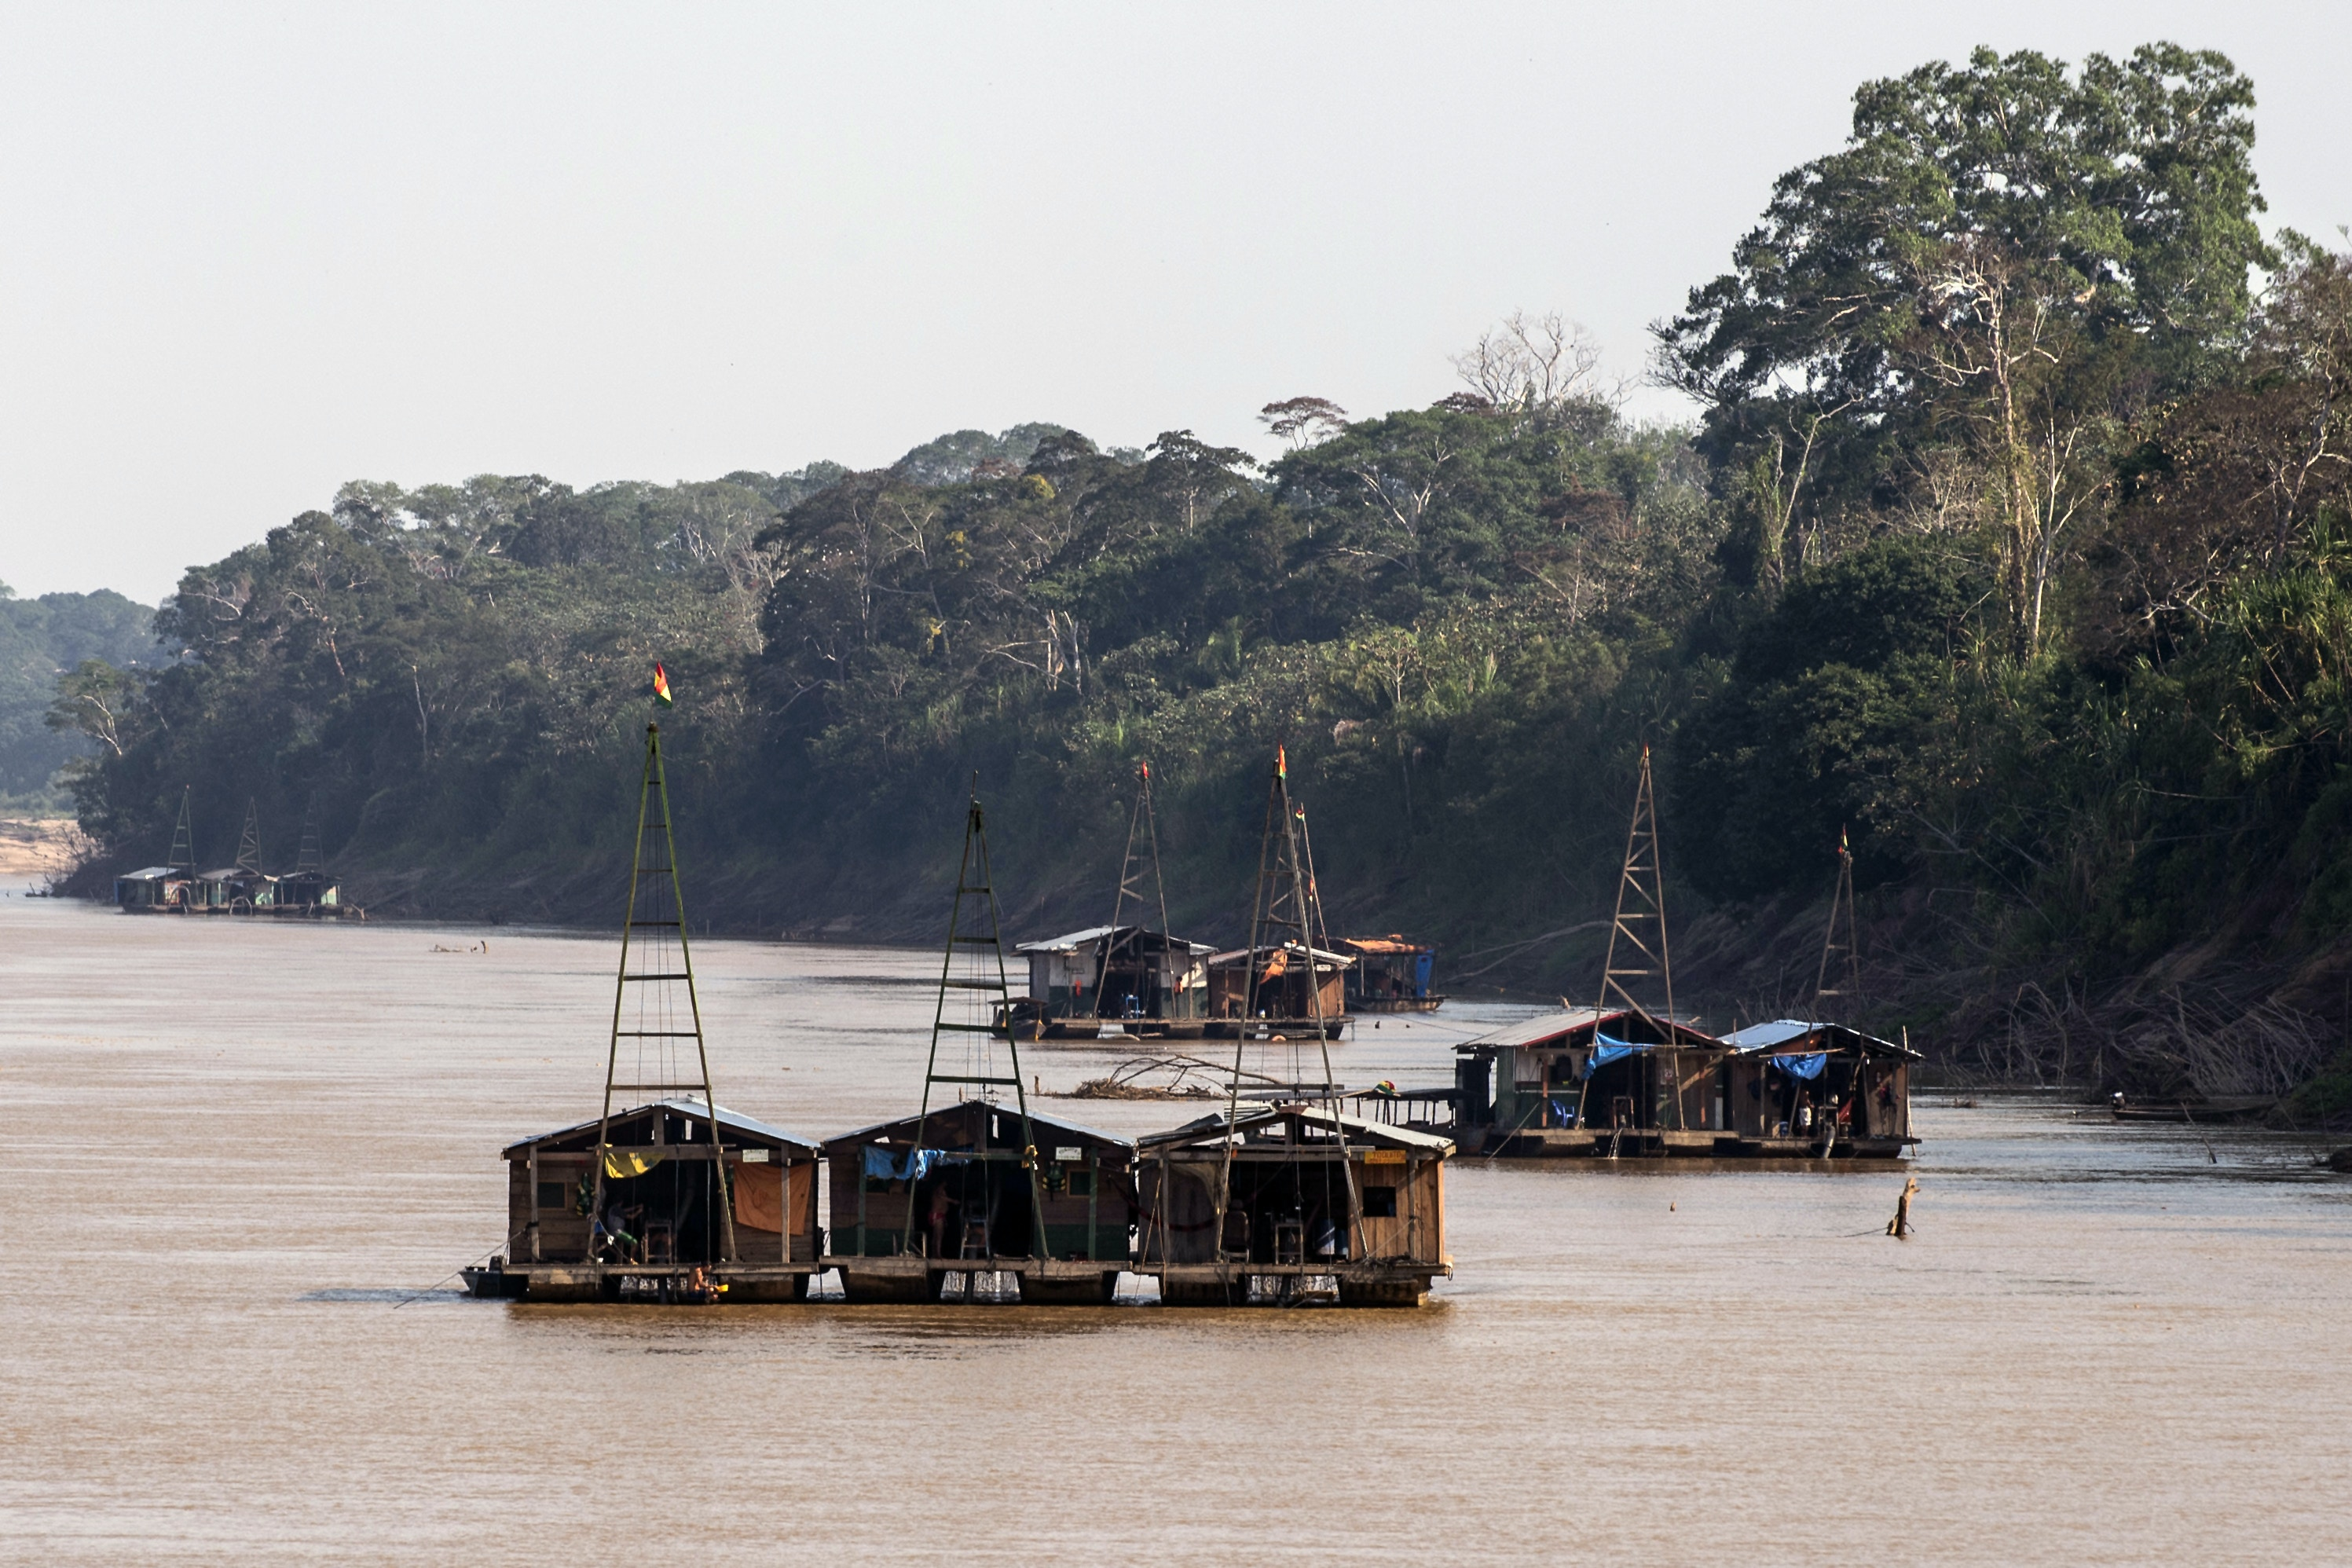 View of dredgers at the Madre de Dios River in Tacana indigenous territory, near Las Mercedes, La Paz department, Bolivia on August 31, 2019. - The Tacana indigenous community is worried about mining activities taking place in their reserve, but even more about an exploitation project launched by the government, which seeks to extract 50 million barrels of oil and 125 billion cubic feet of gas from their subsoil. (Photo by ERNESTO BENAVIDES / AFP) (Photo by ERNESTO BENAVIDES/AFP via Getty Images)